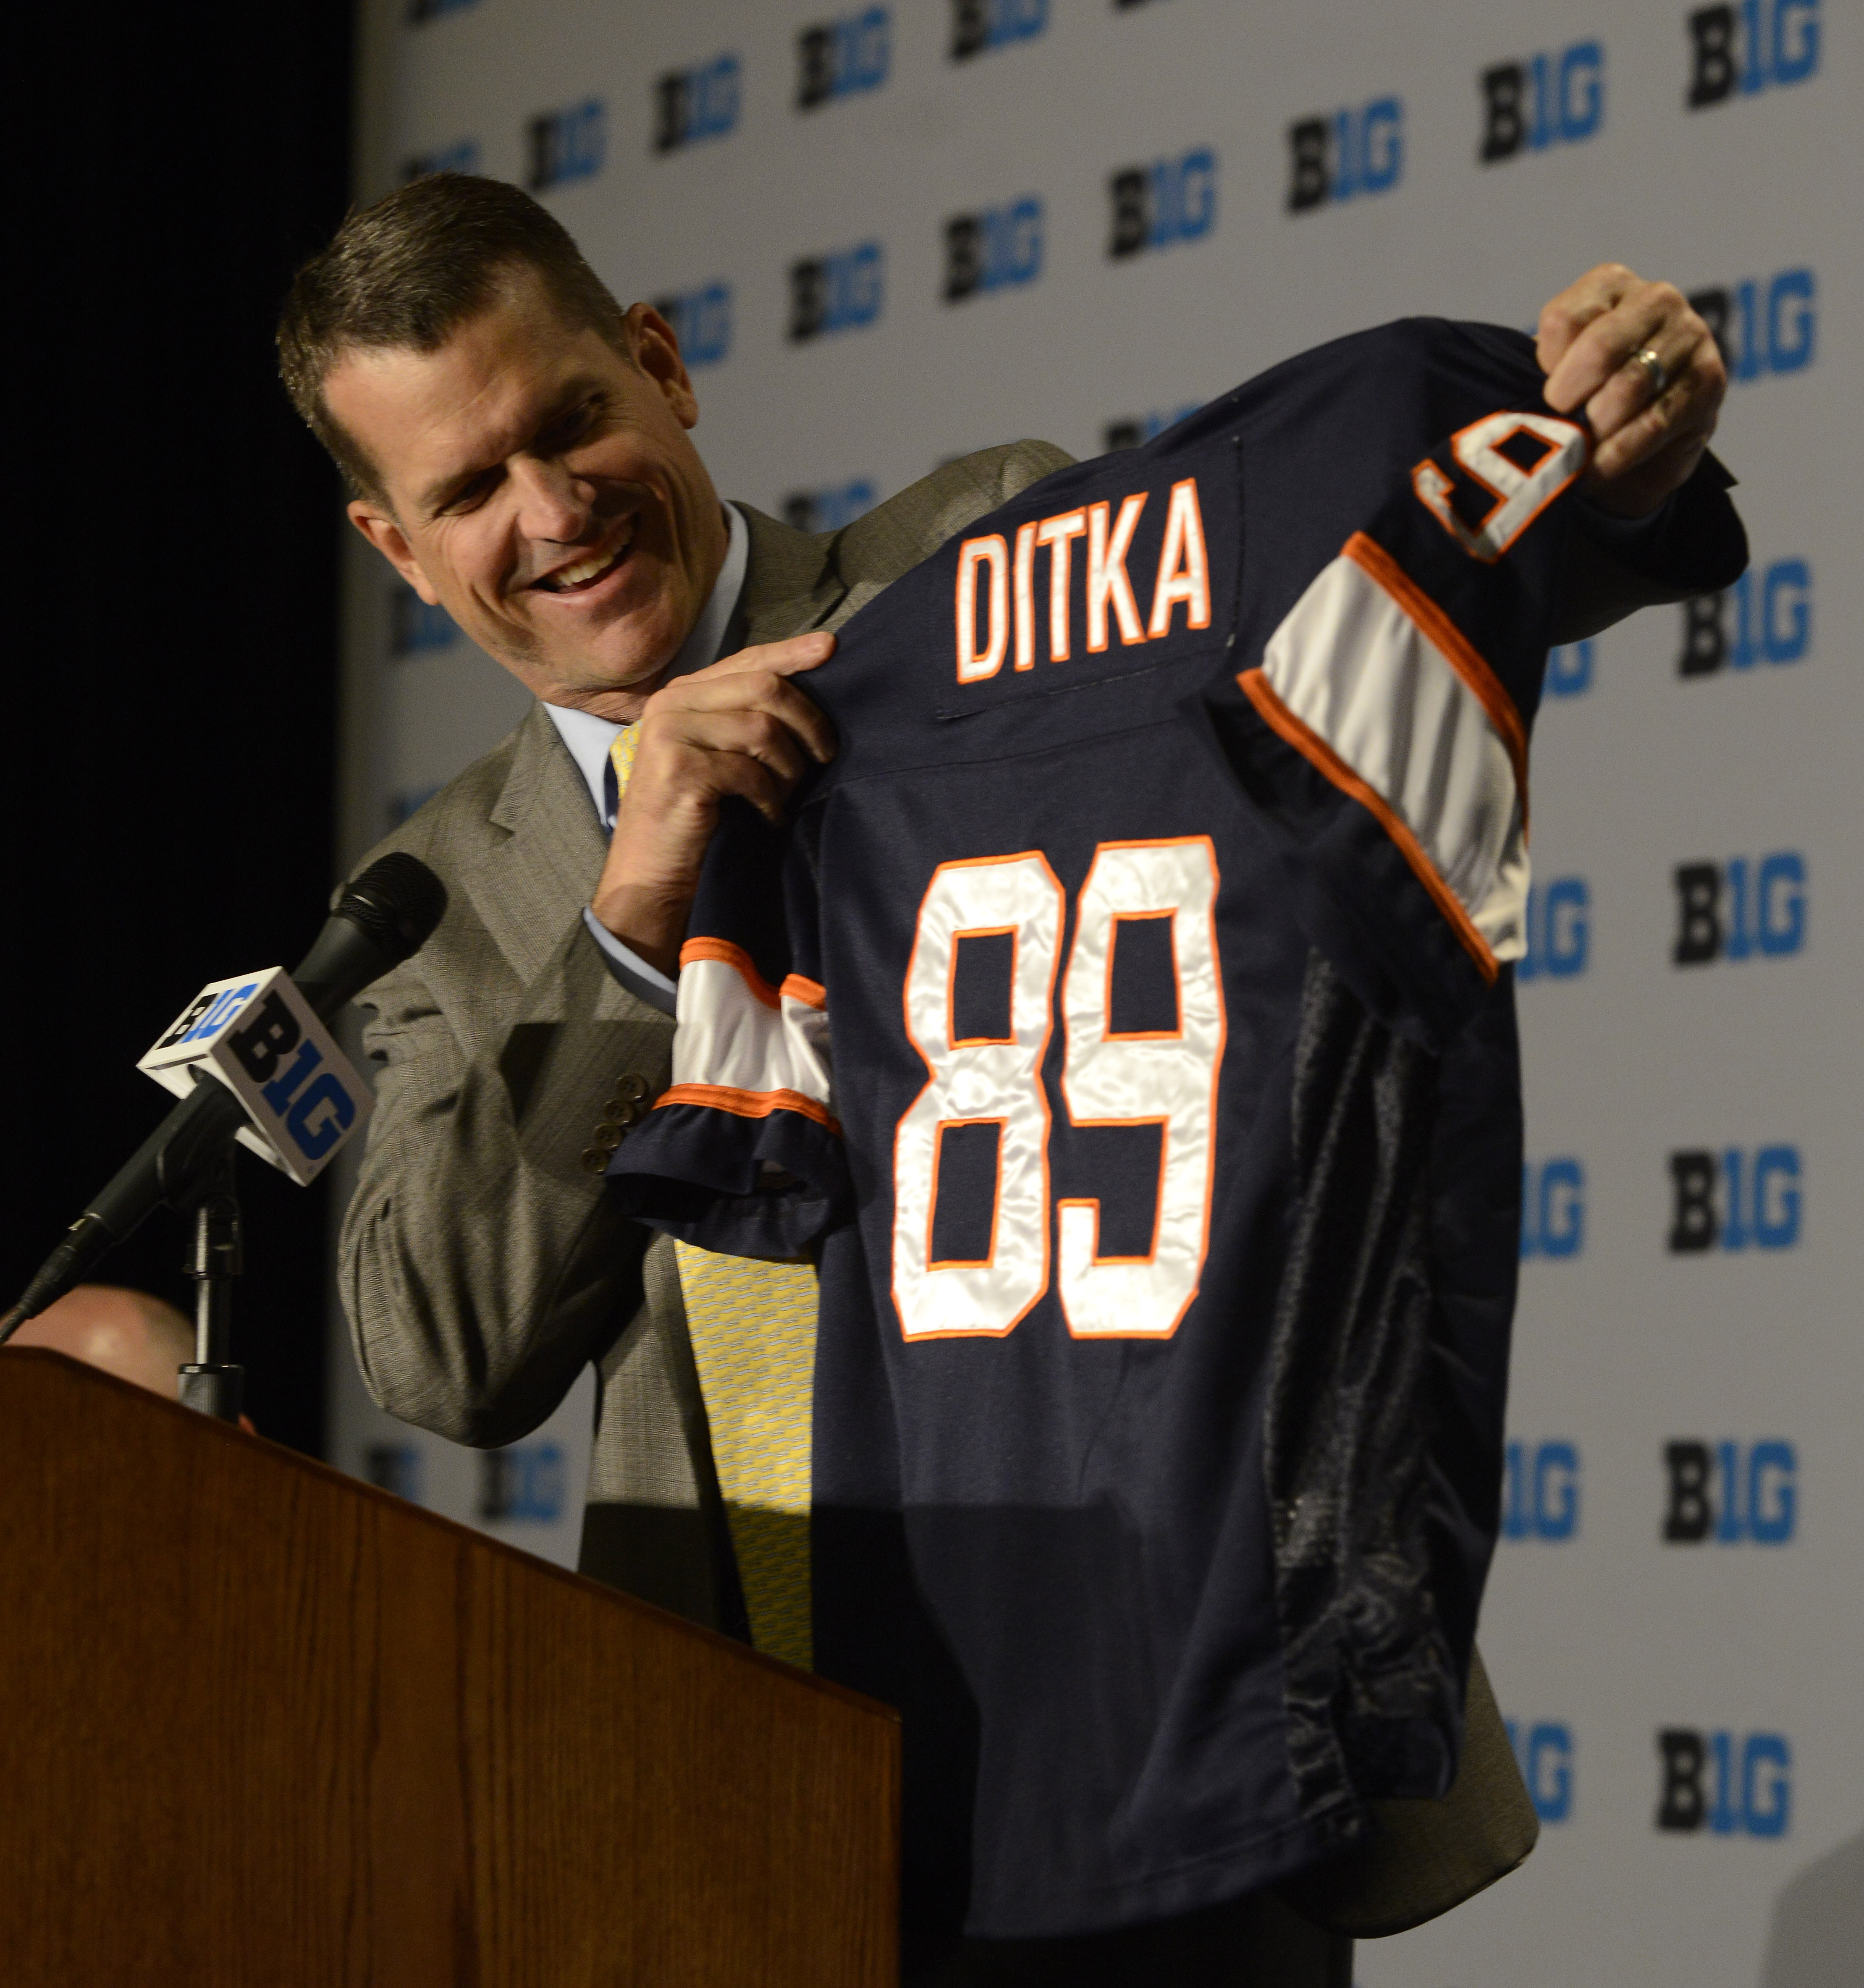 Michigan head coach Jim Harbaugh shows a jersey of his former Chicago Bears coach Mike Ditka while speaking to the media during the NCAA college Big Ten Football Media Day Friday, July 31, 2015 in Chicago. (AP Photo/Paul Beaty)